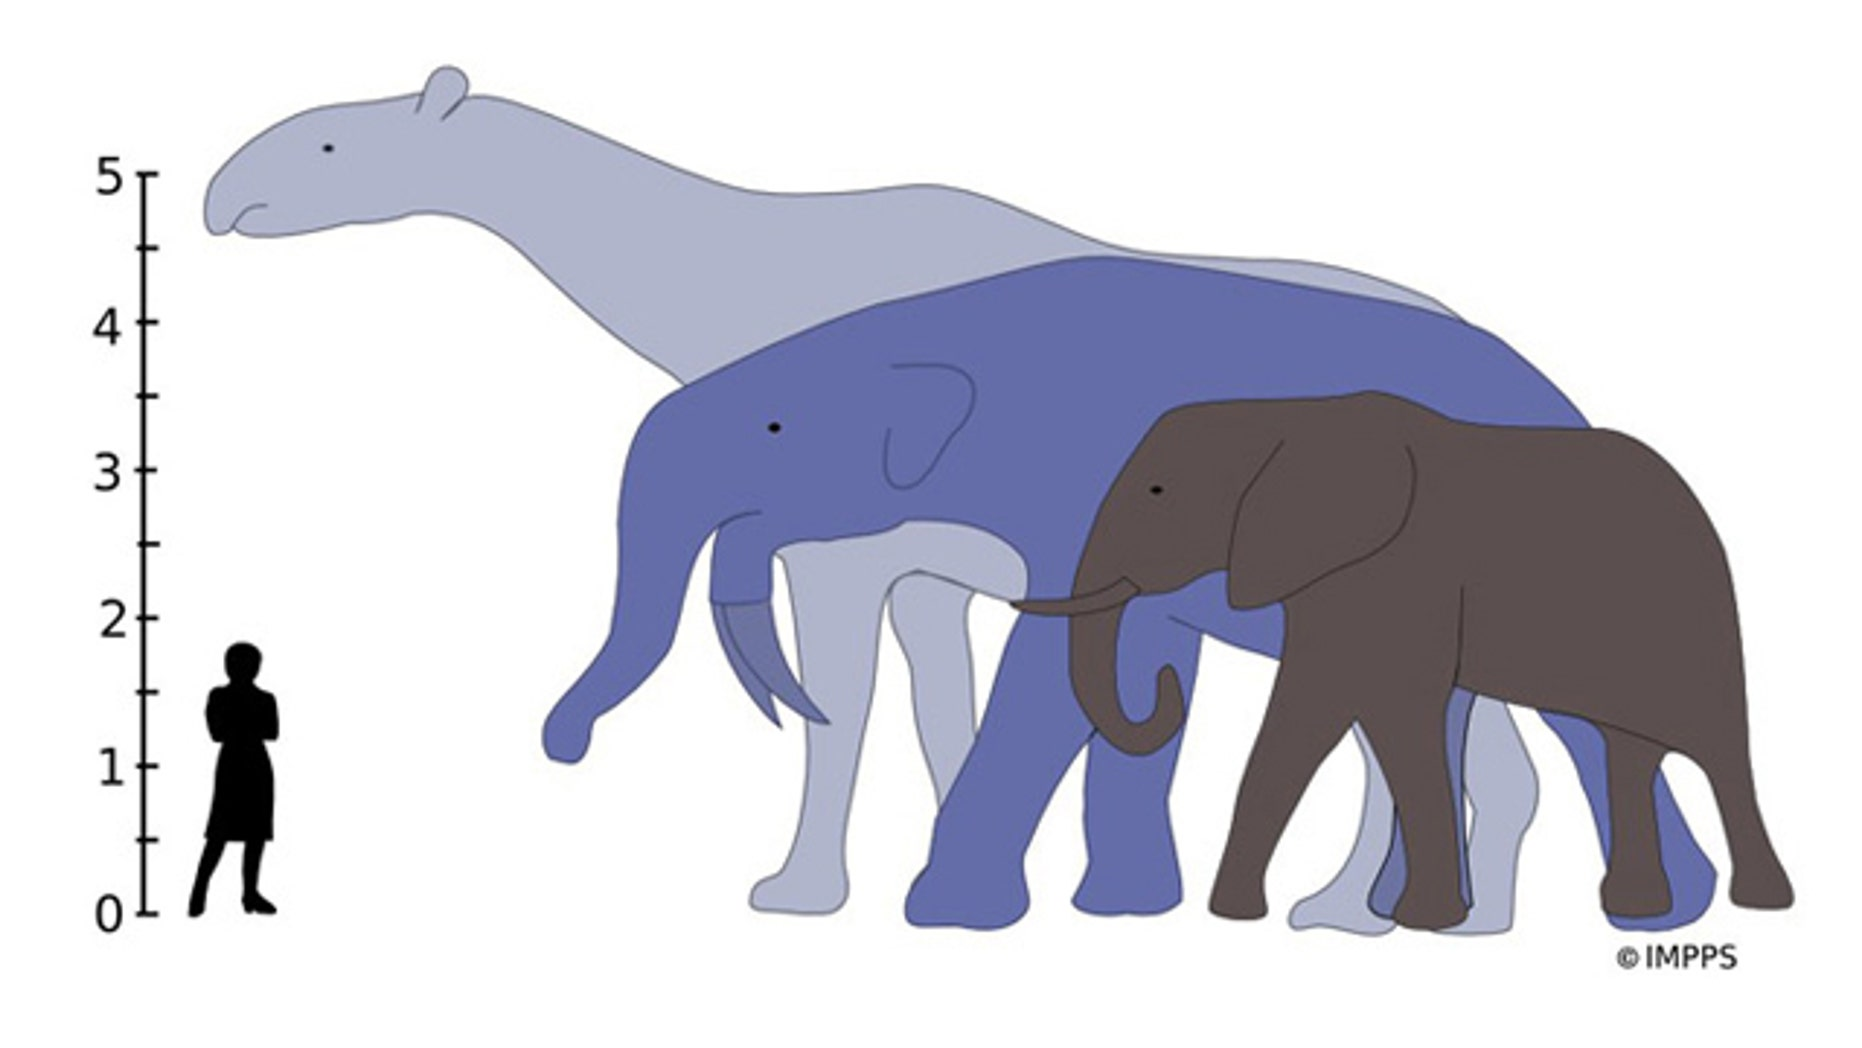 The largest land mammals that ever lived, Indricotherium and Deinotherium, would have towered over the living African elephant. The tallest on diagram, Indricotherium, an extinct rhino relative, lived between 37 and 23 million years ago, while Deinotherium (an extinct relative of modern elephants) was around from 8.5 million to 2.7 million years ago